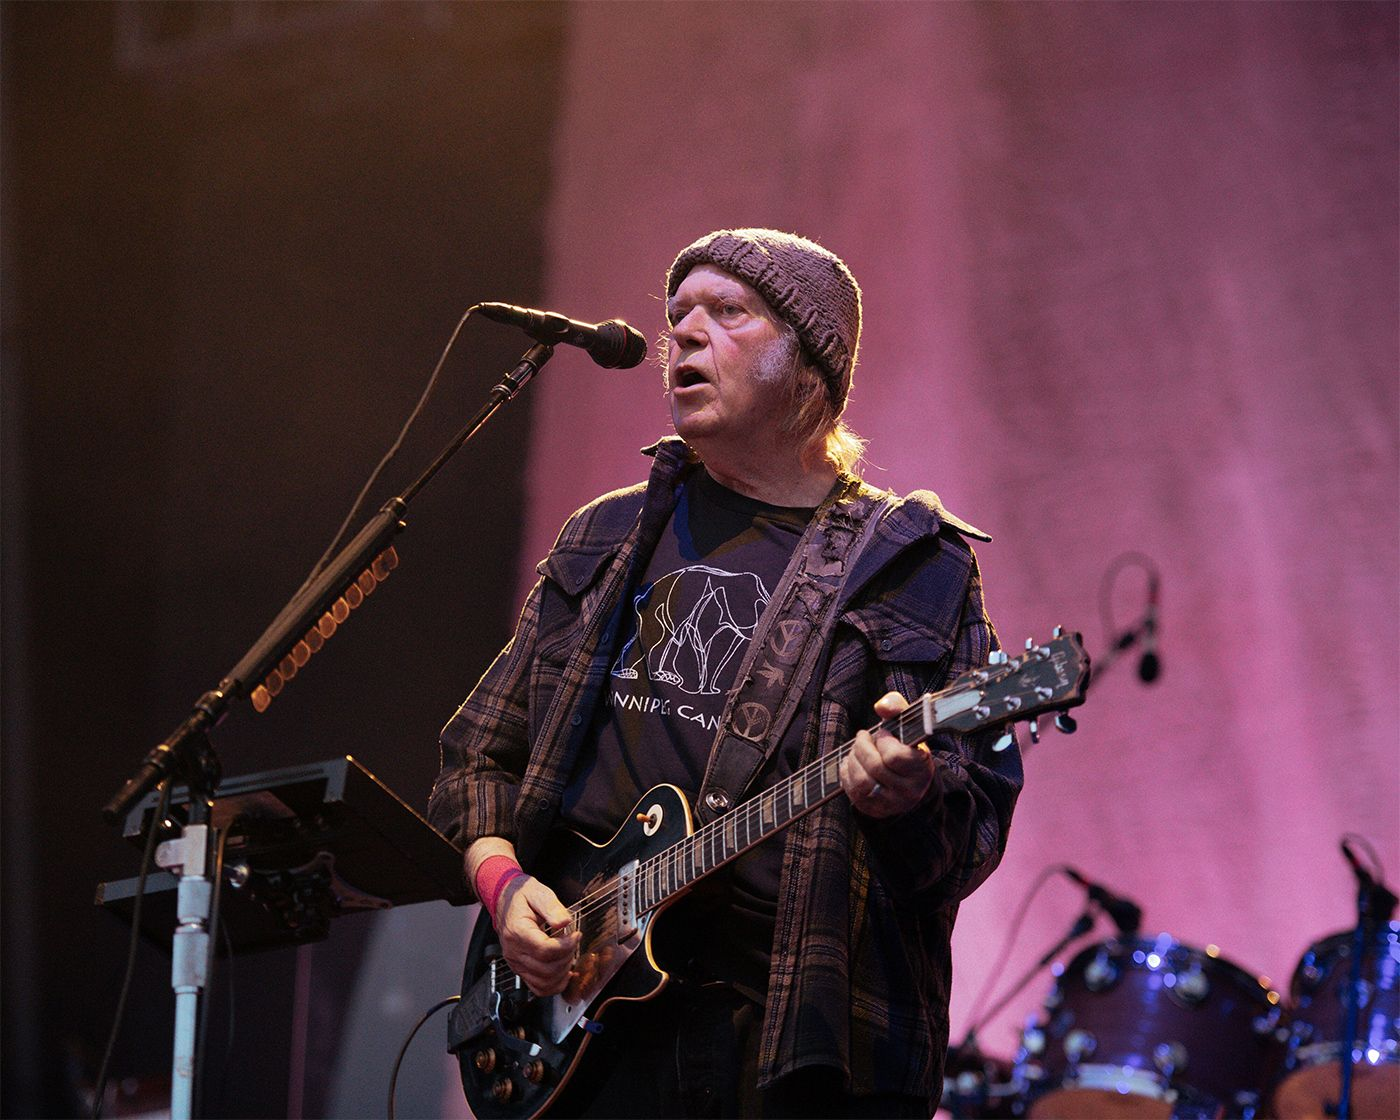 Festival attempts to shut down Neil Young, he keeps playing anyway